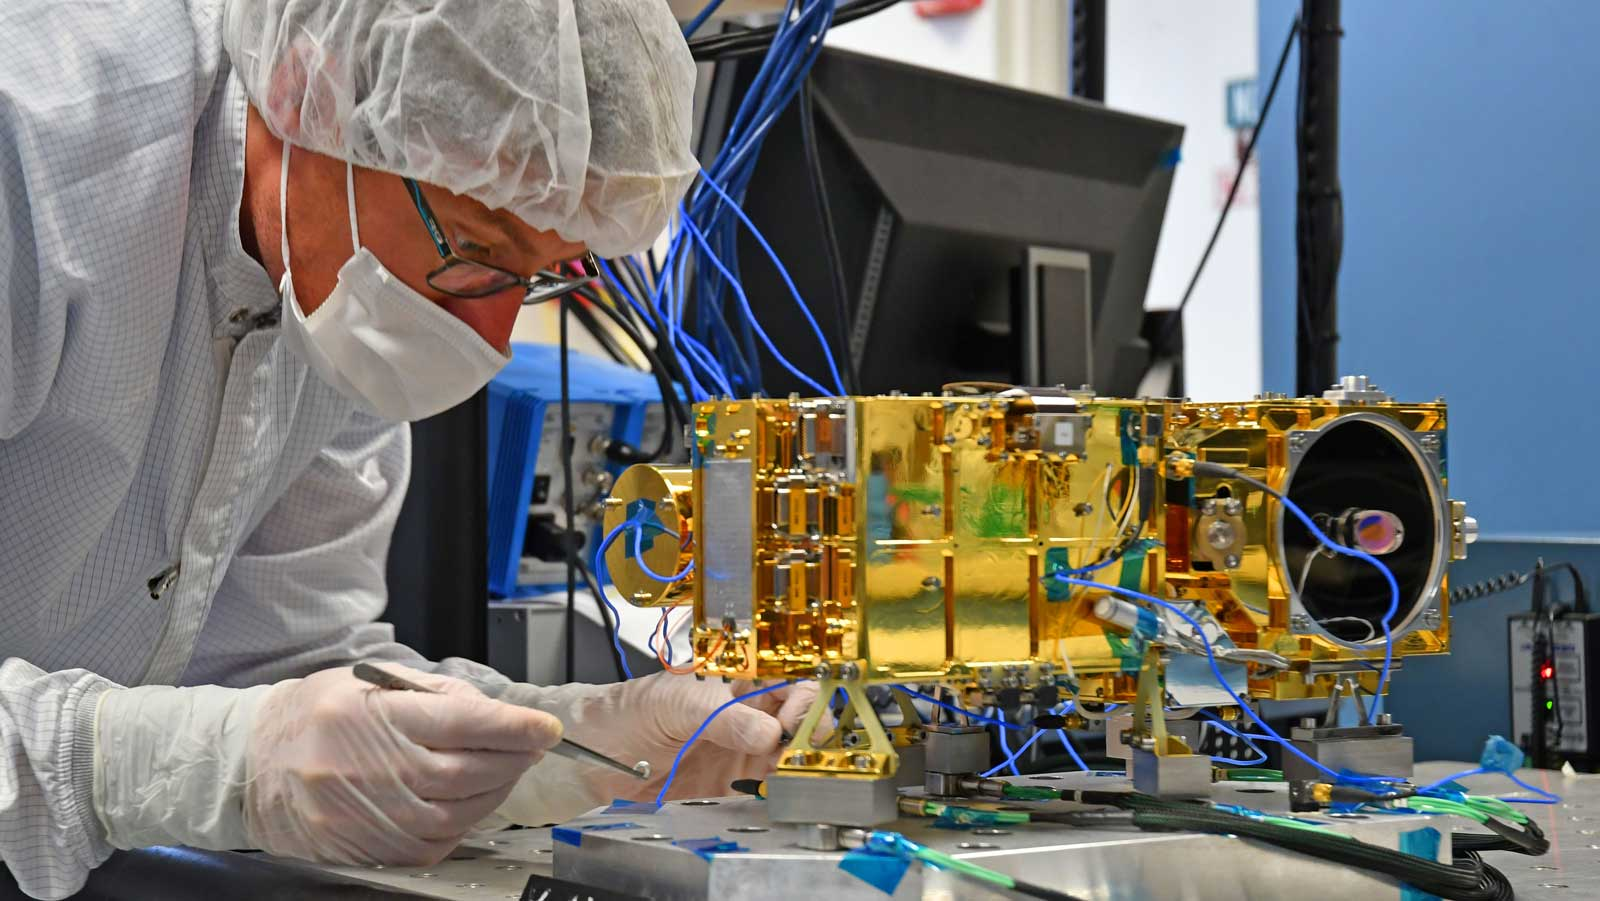 The Mast Unit for Mars 2020's SuperCam, shown being tested here, will use a laser to vaporize and study rock material on the Red Planet's surface.